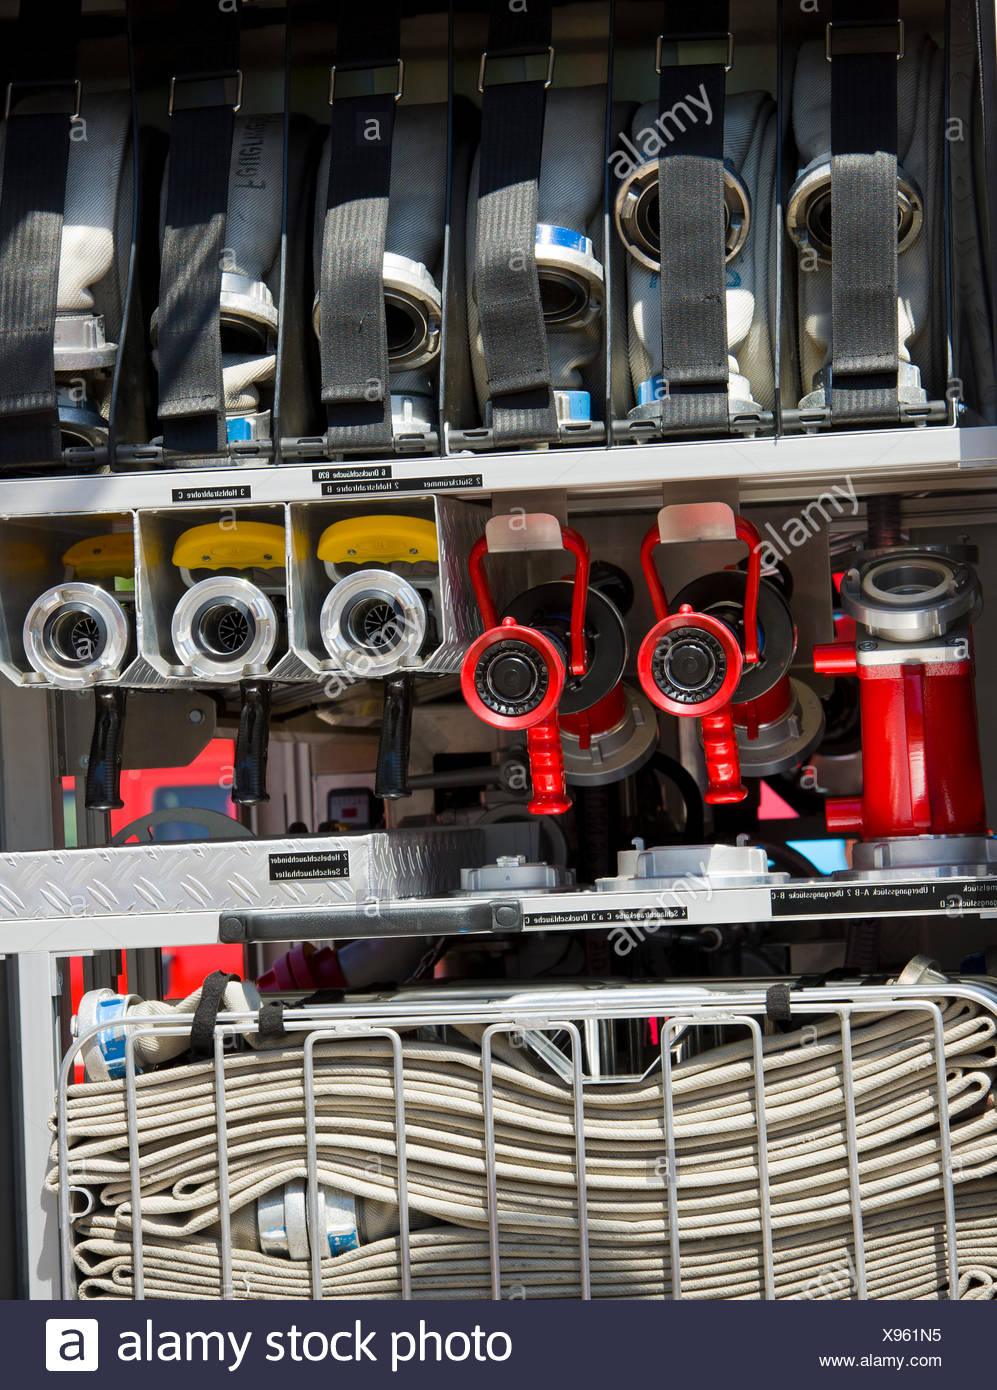 Fire engine hoses and nozzles. Stock Photo